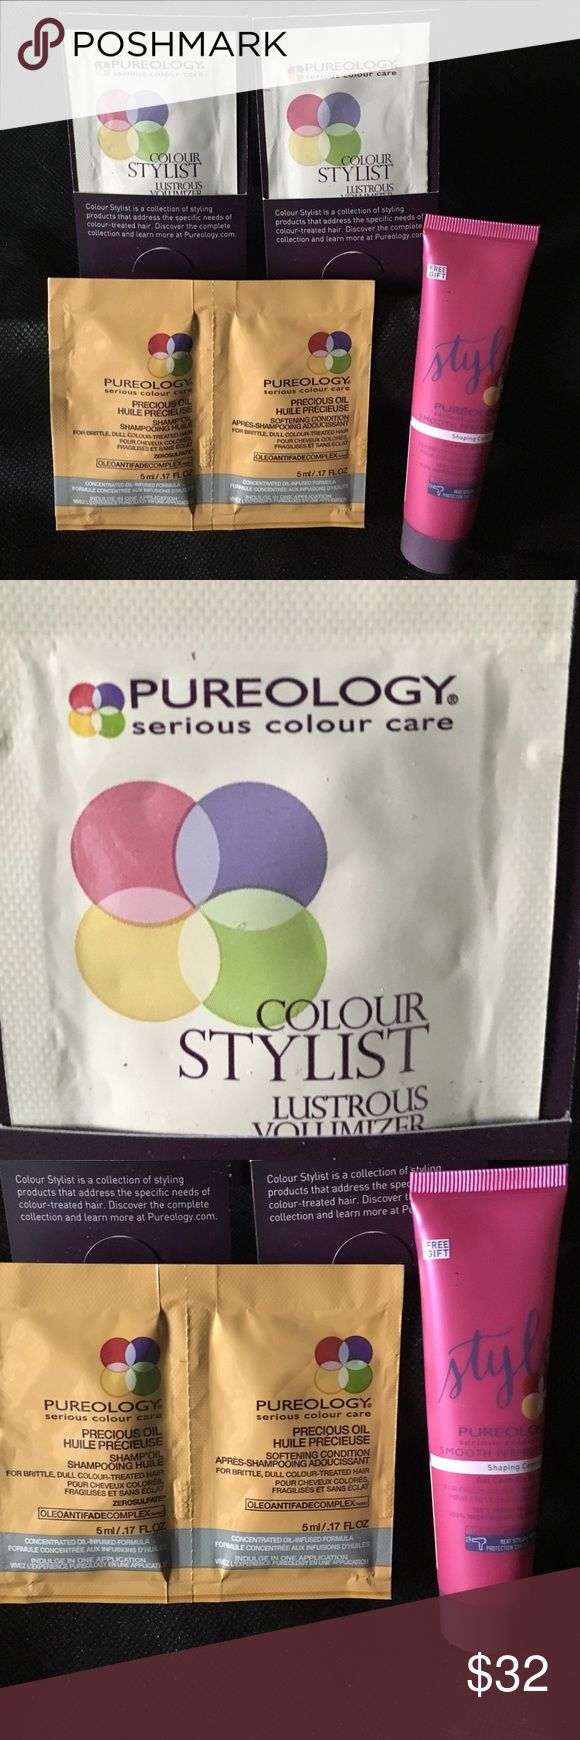 NWT! Pureology Hair Care 5Pc Gift Set! NWT! Pureology Hair Care 5Pc Gift Set! Includes Pureology Colour Stylist Lustrous Volumizer Bodifying Glaze for Colour Treated Hair (2), Pureology Precious Oil Shampoo & Conditioner (1 each) & Pureology Smooth PerfectionShaping Control Gel 30ml/1oz. Pureology Makeup